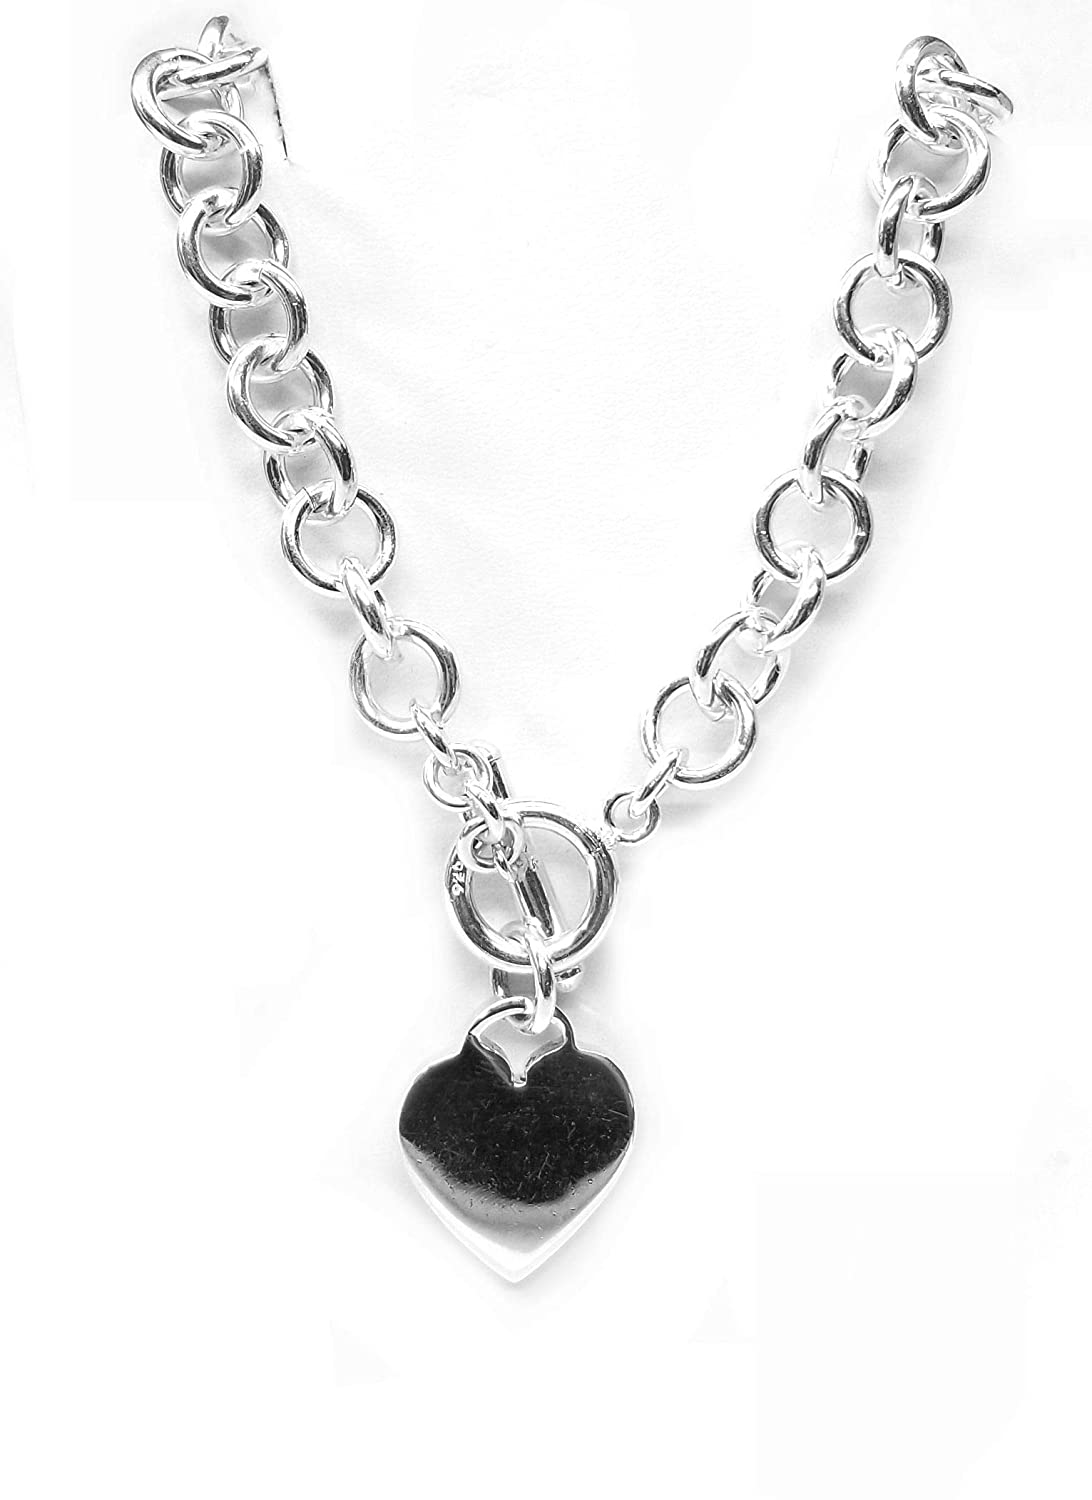 2b67f7bb5 Amazon.com: Round link necklace w/toggle clasp & heart pendant, in Sterling  Silver: Handmade